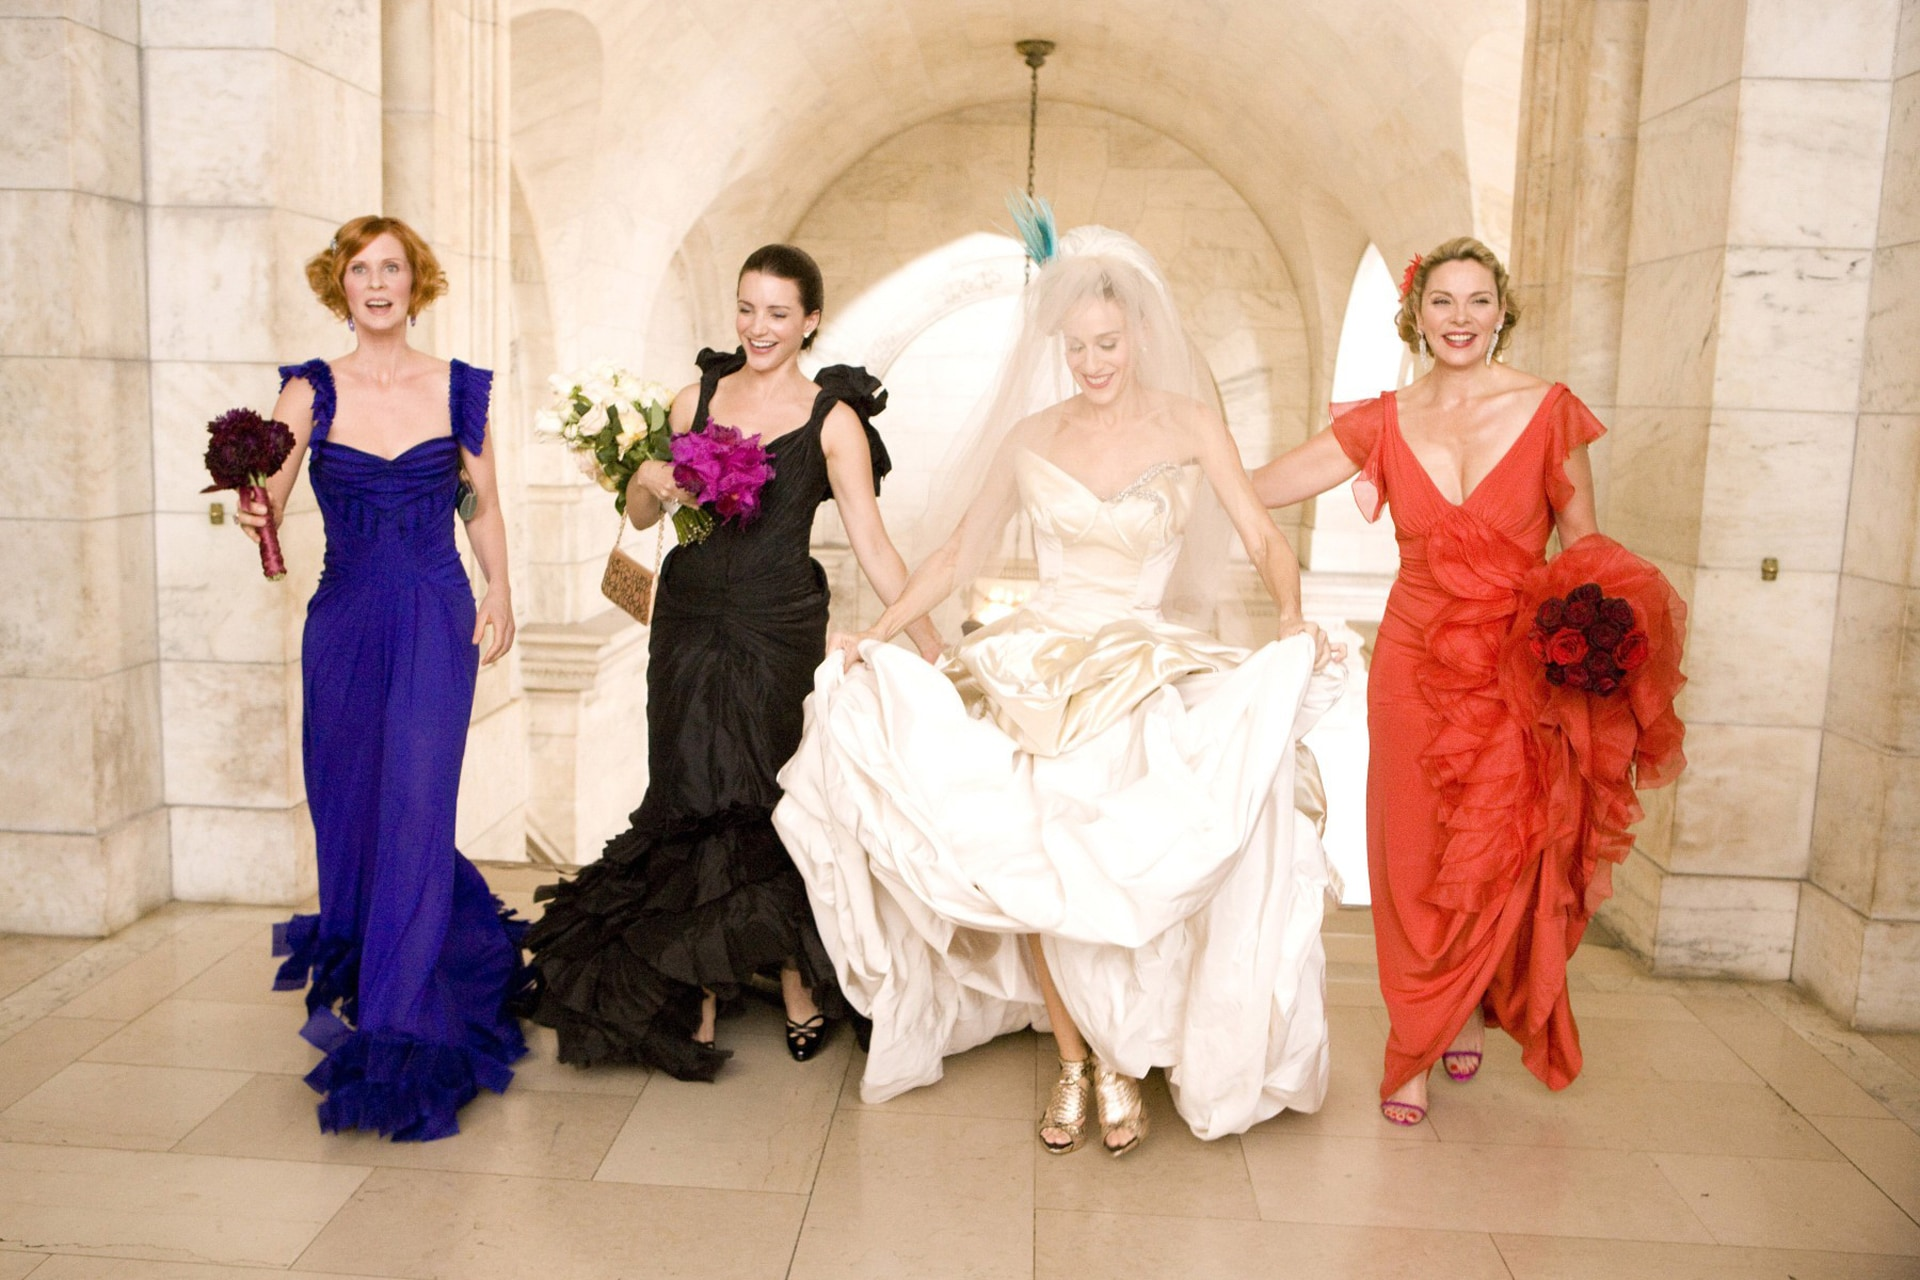 The most memorable wedding dresses to ever appear on screen